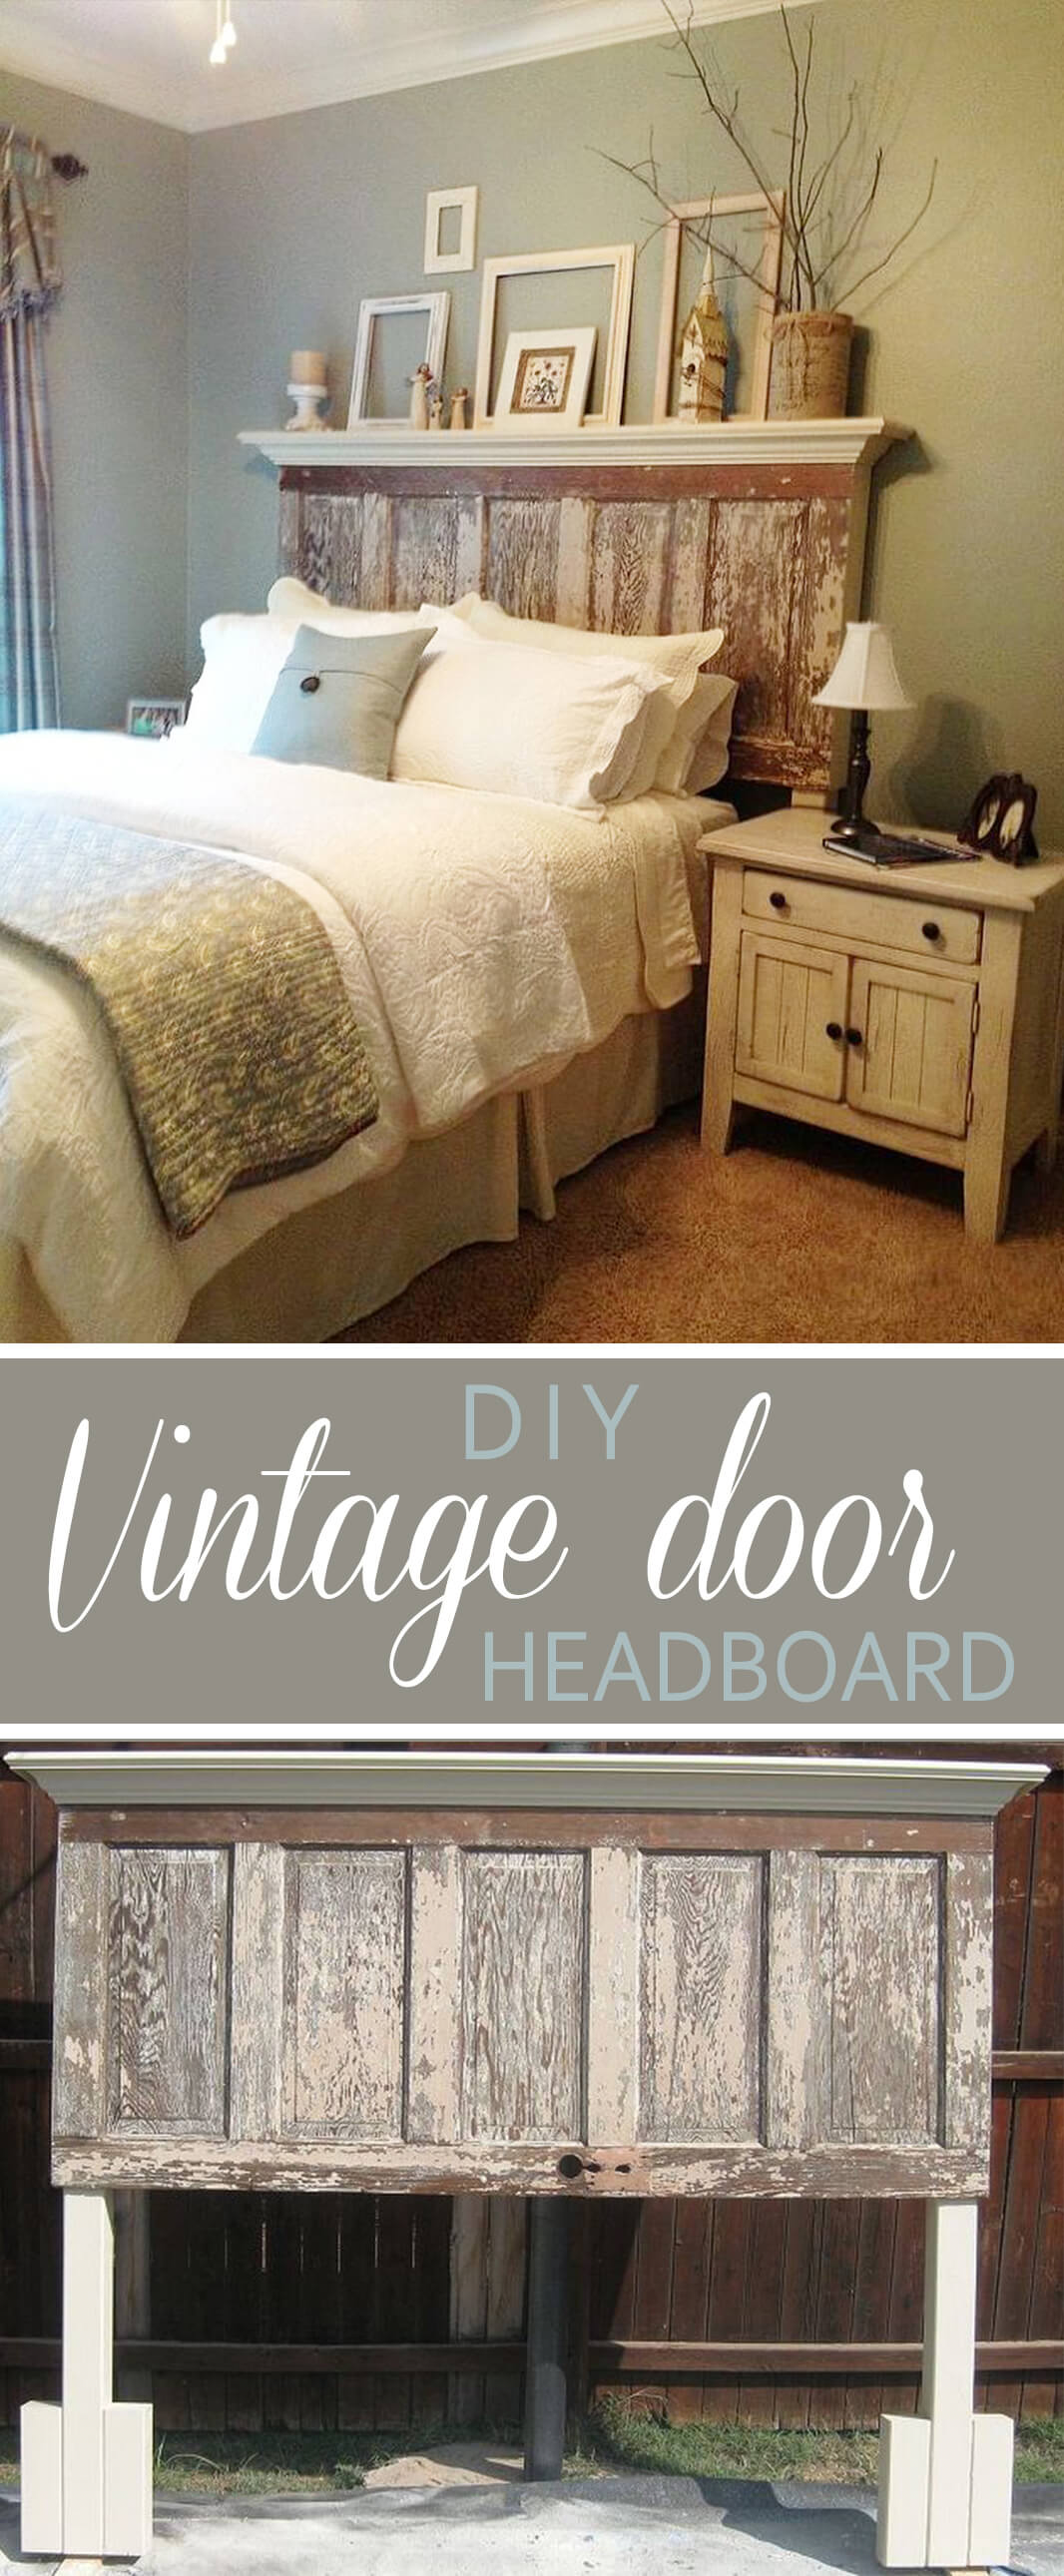 The 47 Best Diy Headboard Ideas For 2021